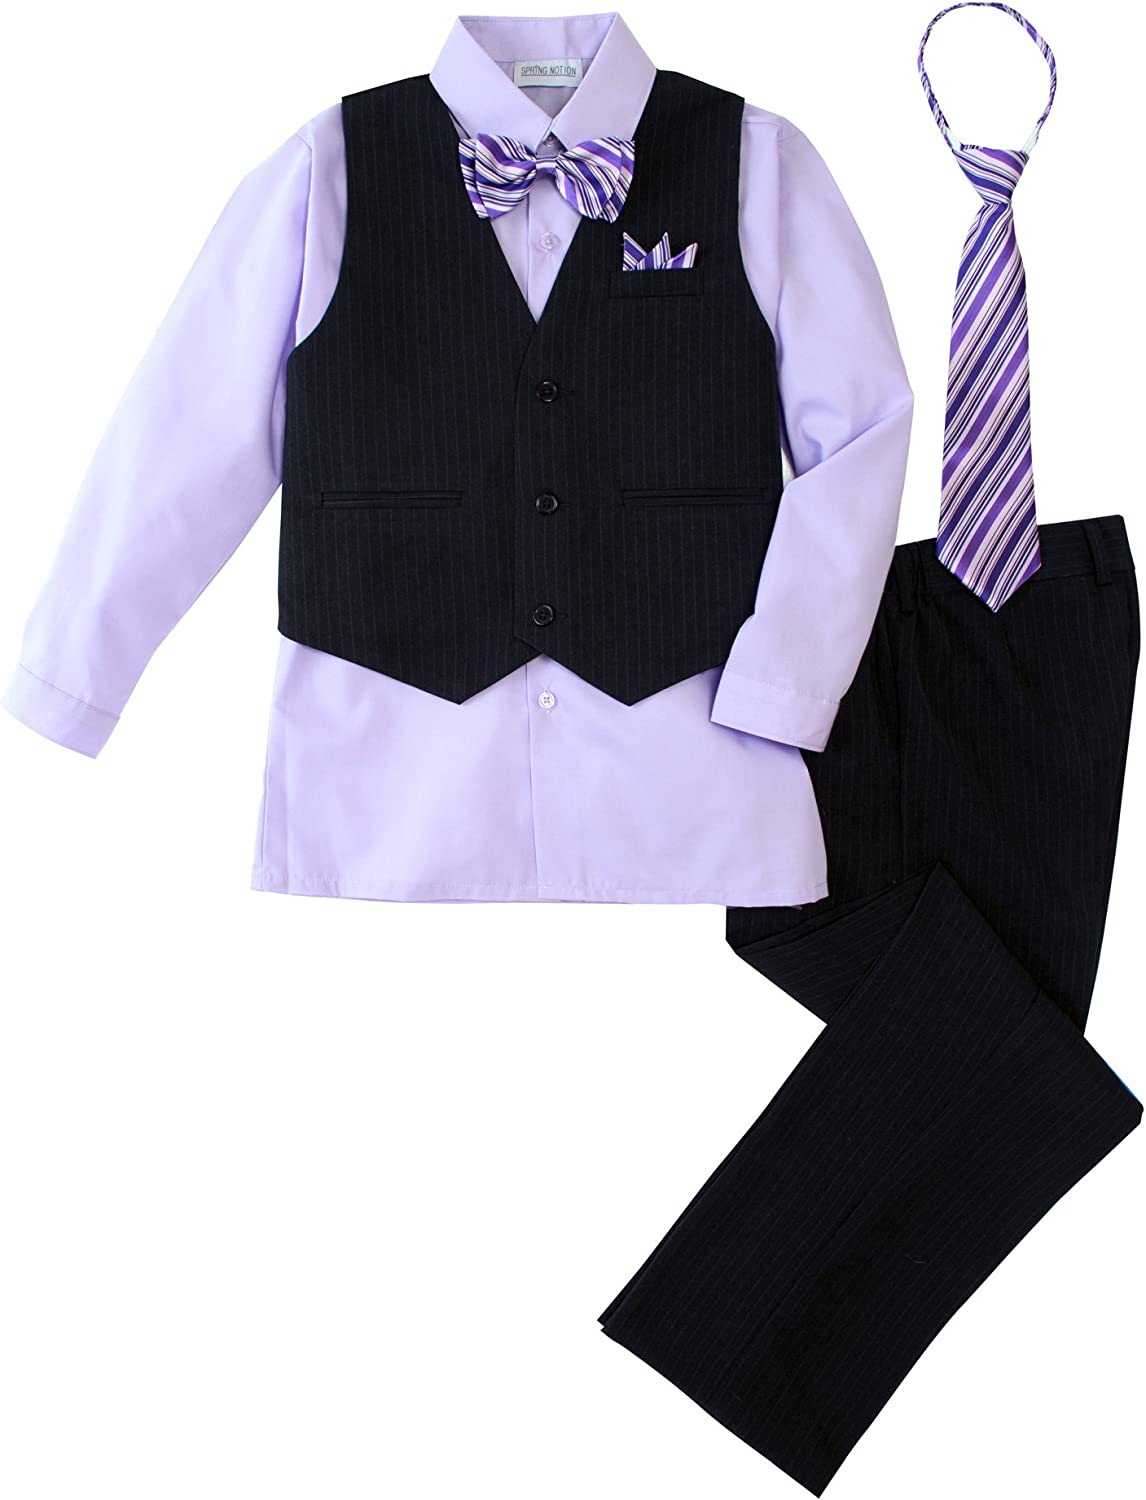 B00I1R5T2S Spring Notion Big Boys' 5 Piece Pinstripe Vest Set with Necktie and Bowtie Lilac 71yDbp8r2BNL